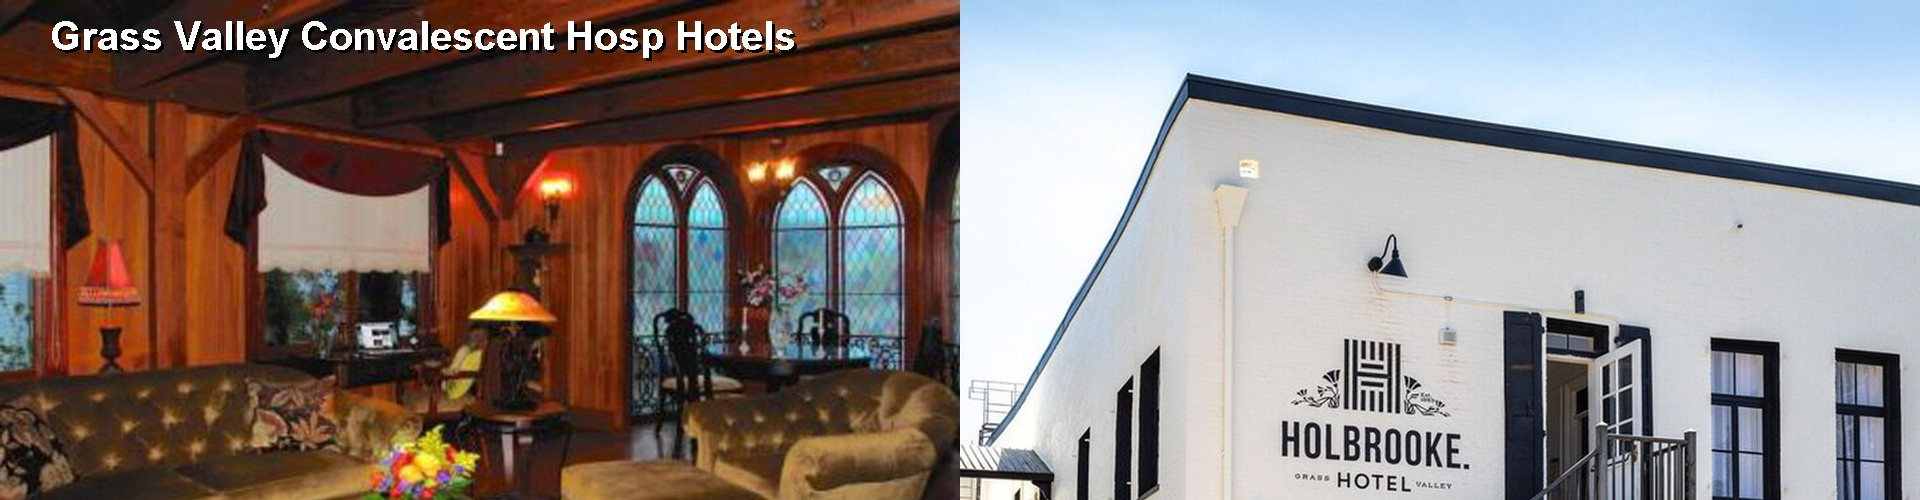 5 Best Hotels near Grass Valley Convalescent Hosp